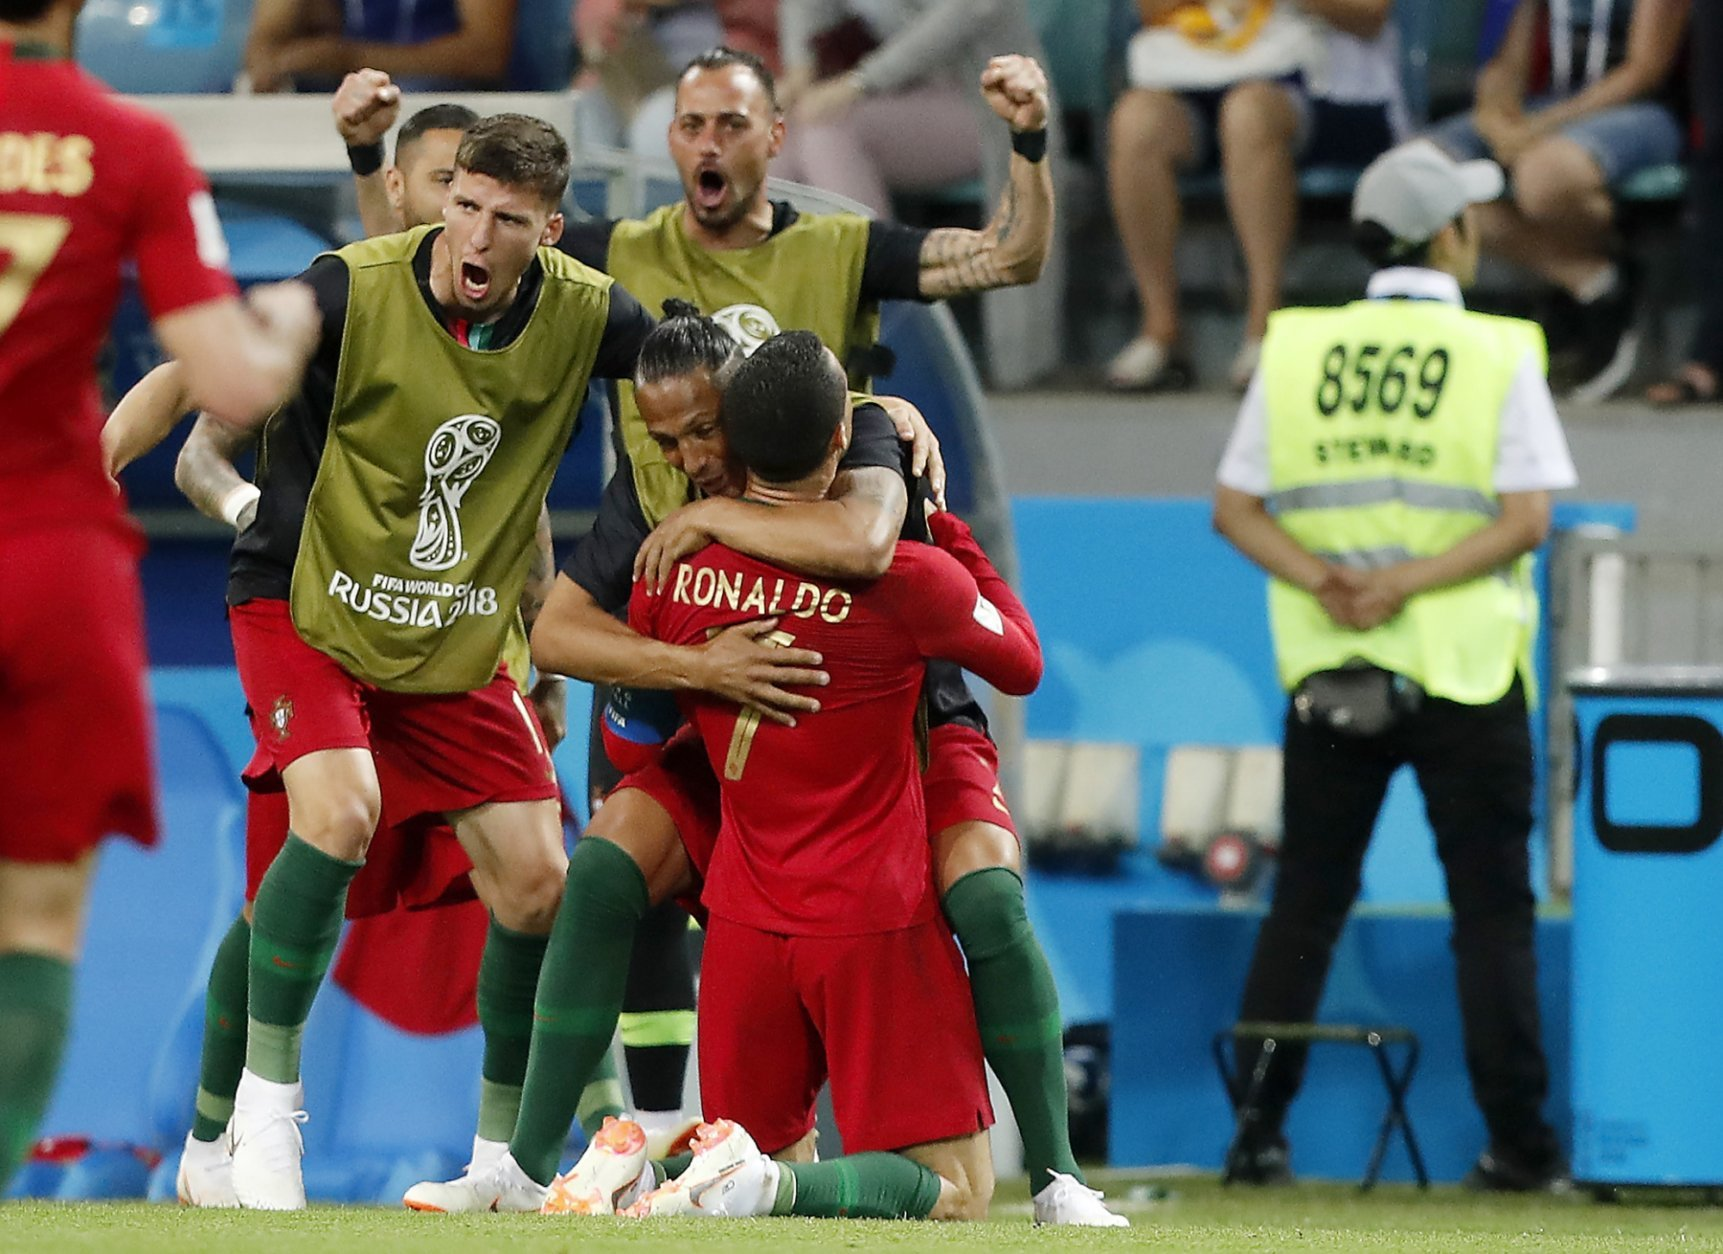 Portugal's Cristiano Ronaldo slides on the ground to his bench after scoring his second goal during the group B match between Portugal and Spain at the 2018 soccer World Cup in the Fisht Stadium in Sochi, Russia, Friday, June 15, 2018. (AP Photo/Frank Augstein)